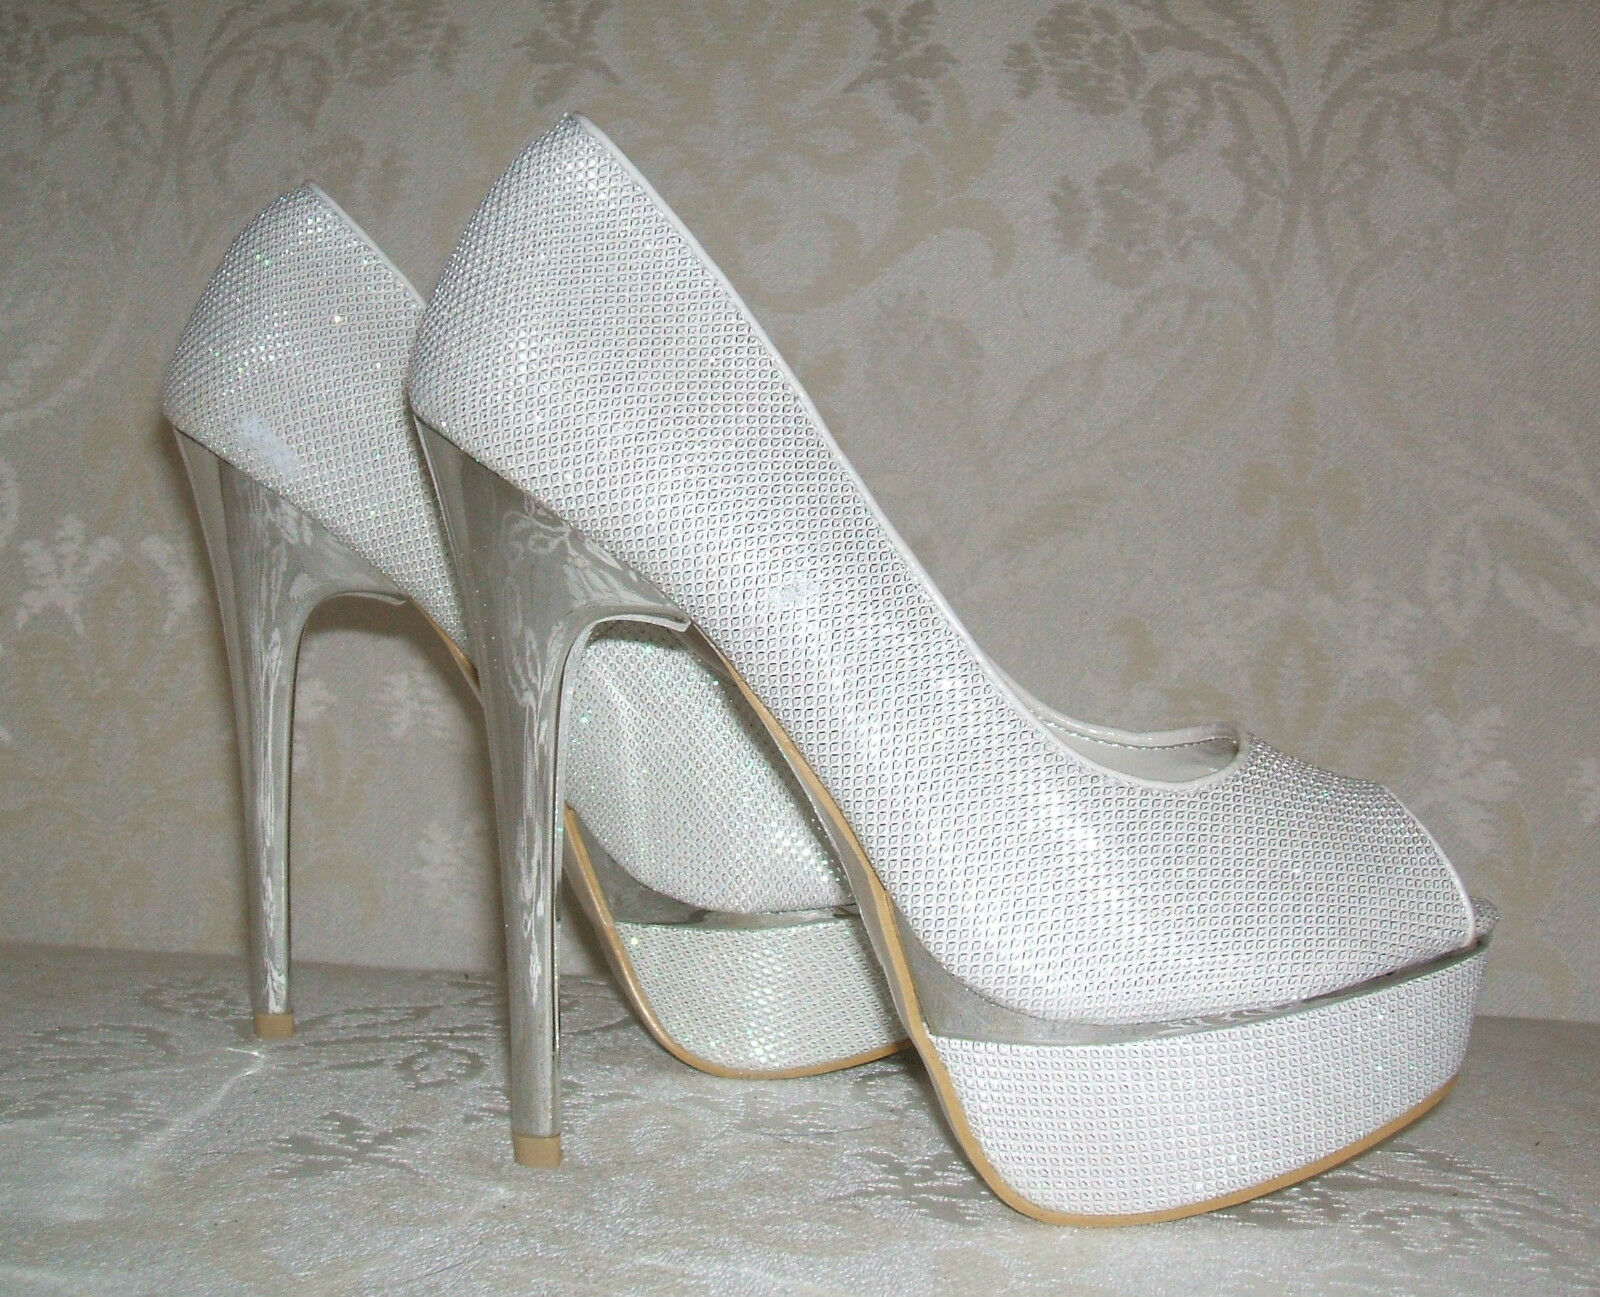 SIZE 2.5 3 4 5 6 IVORY SILVER SPARKLY SHIMMER PEEPTOE WEDDING BRIDAL COURT SHOES